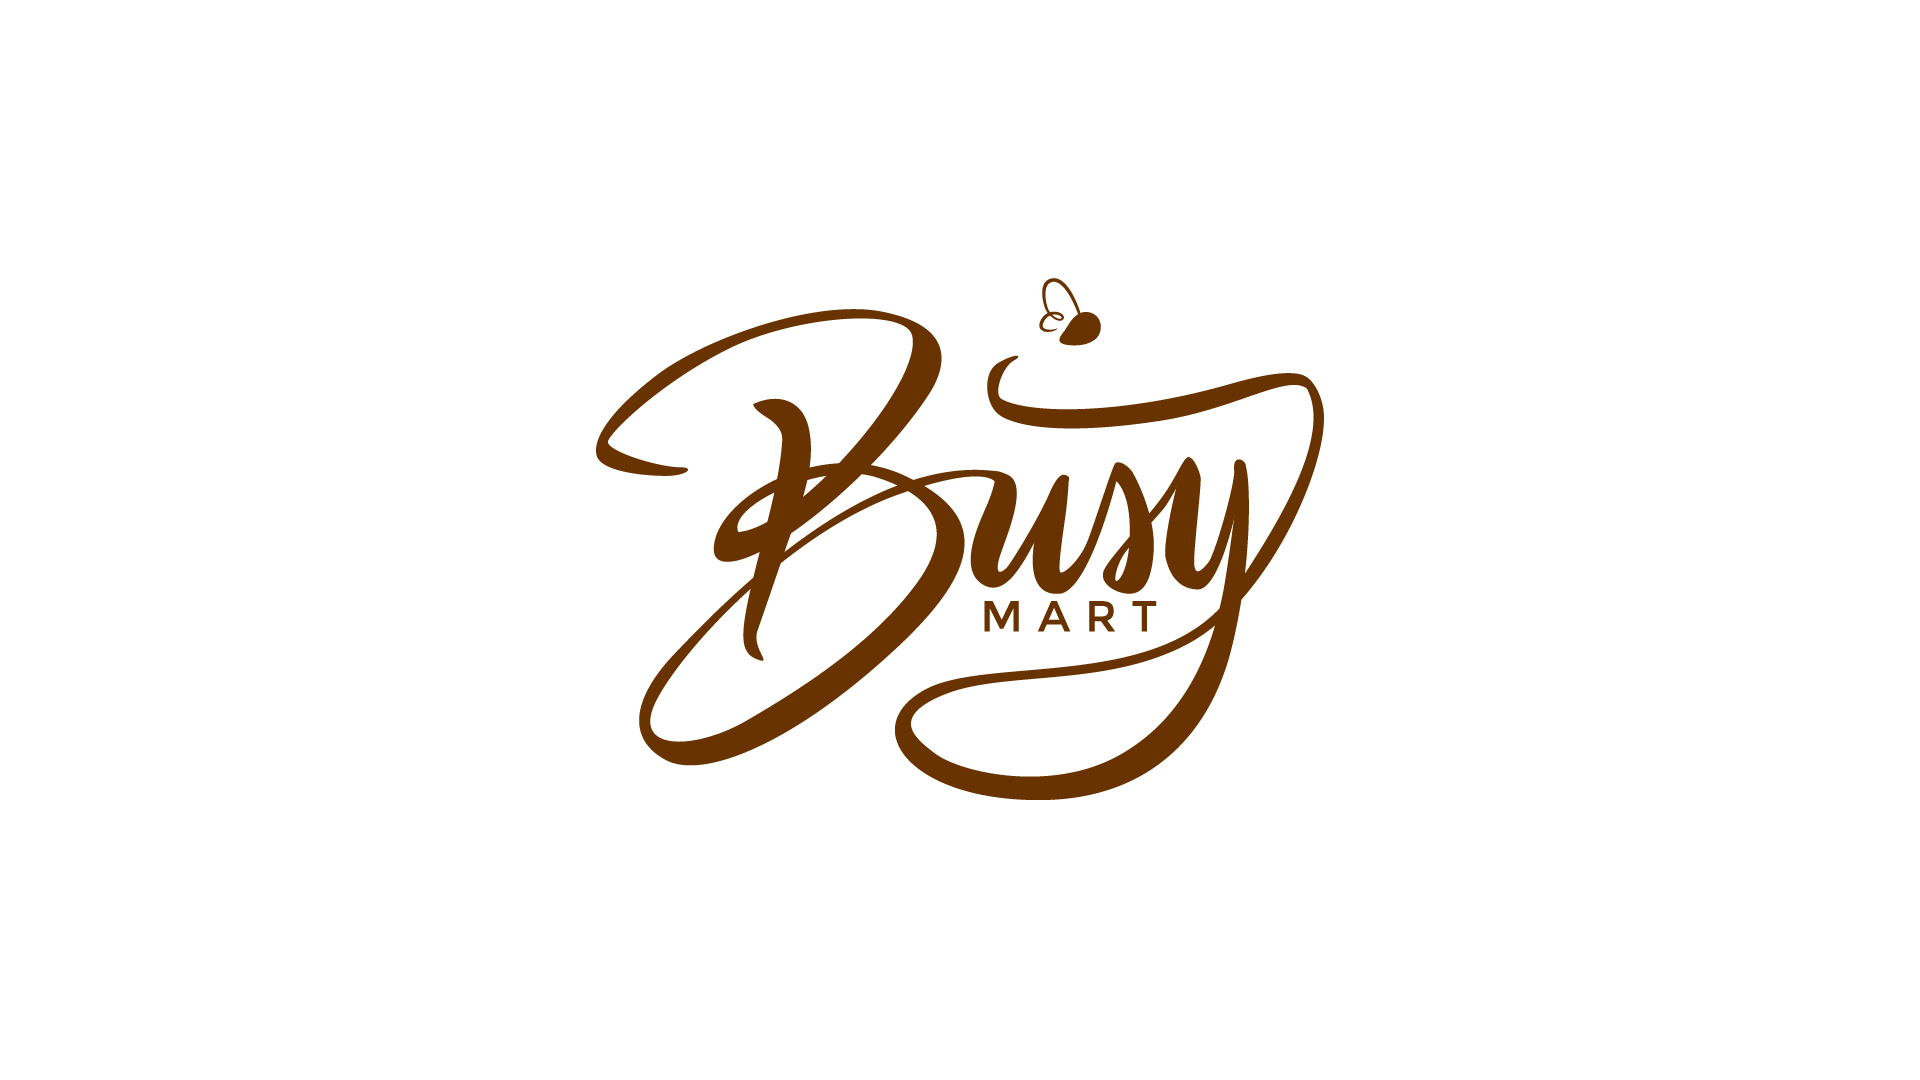 Busy Mart logo by Dustin Drake